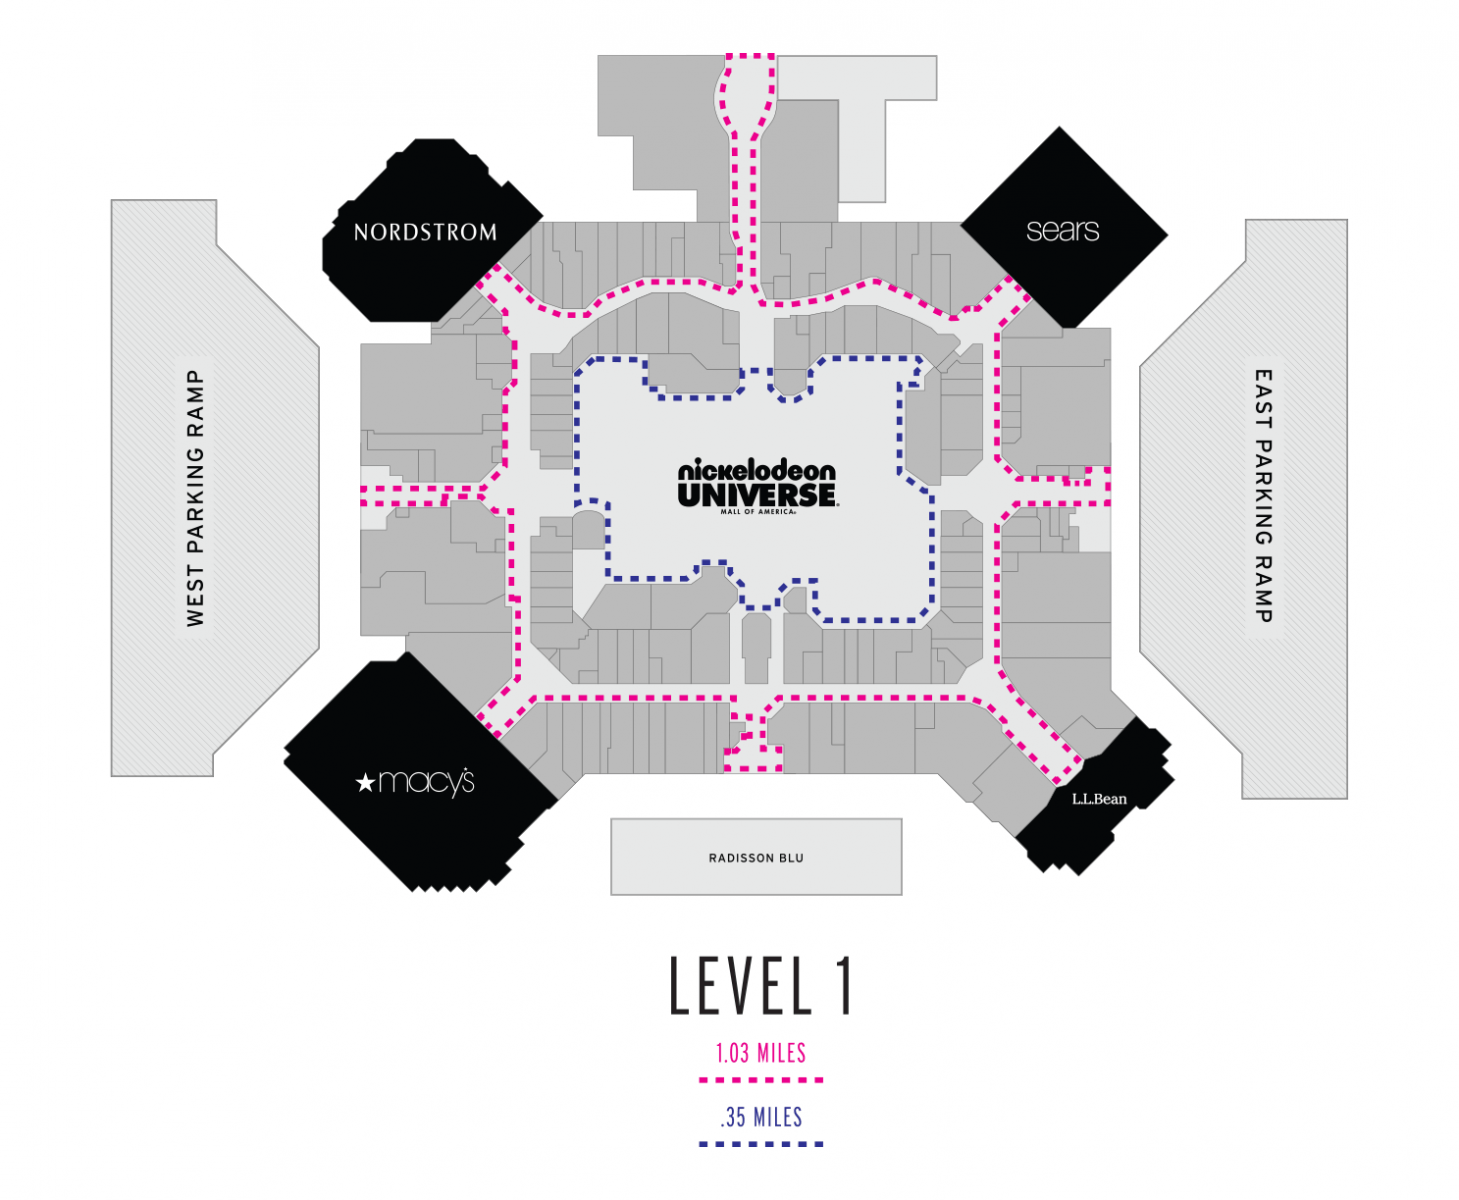 Level 1 Walking Map